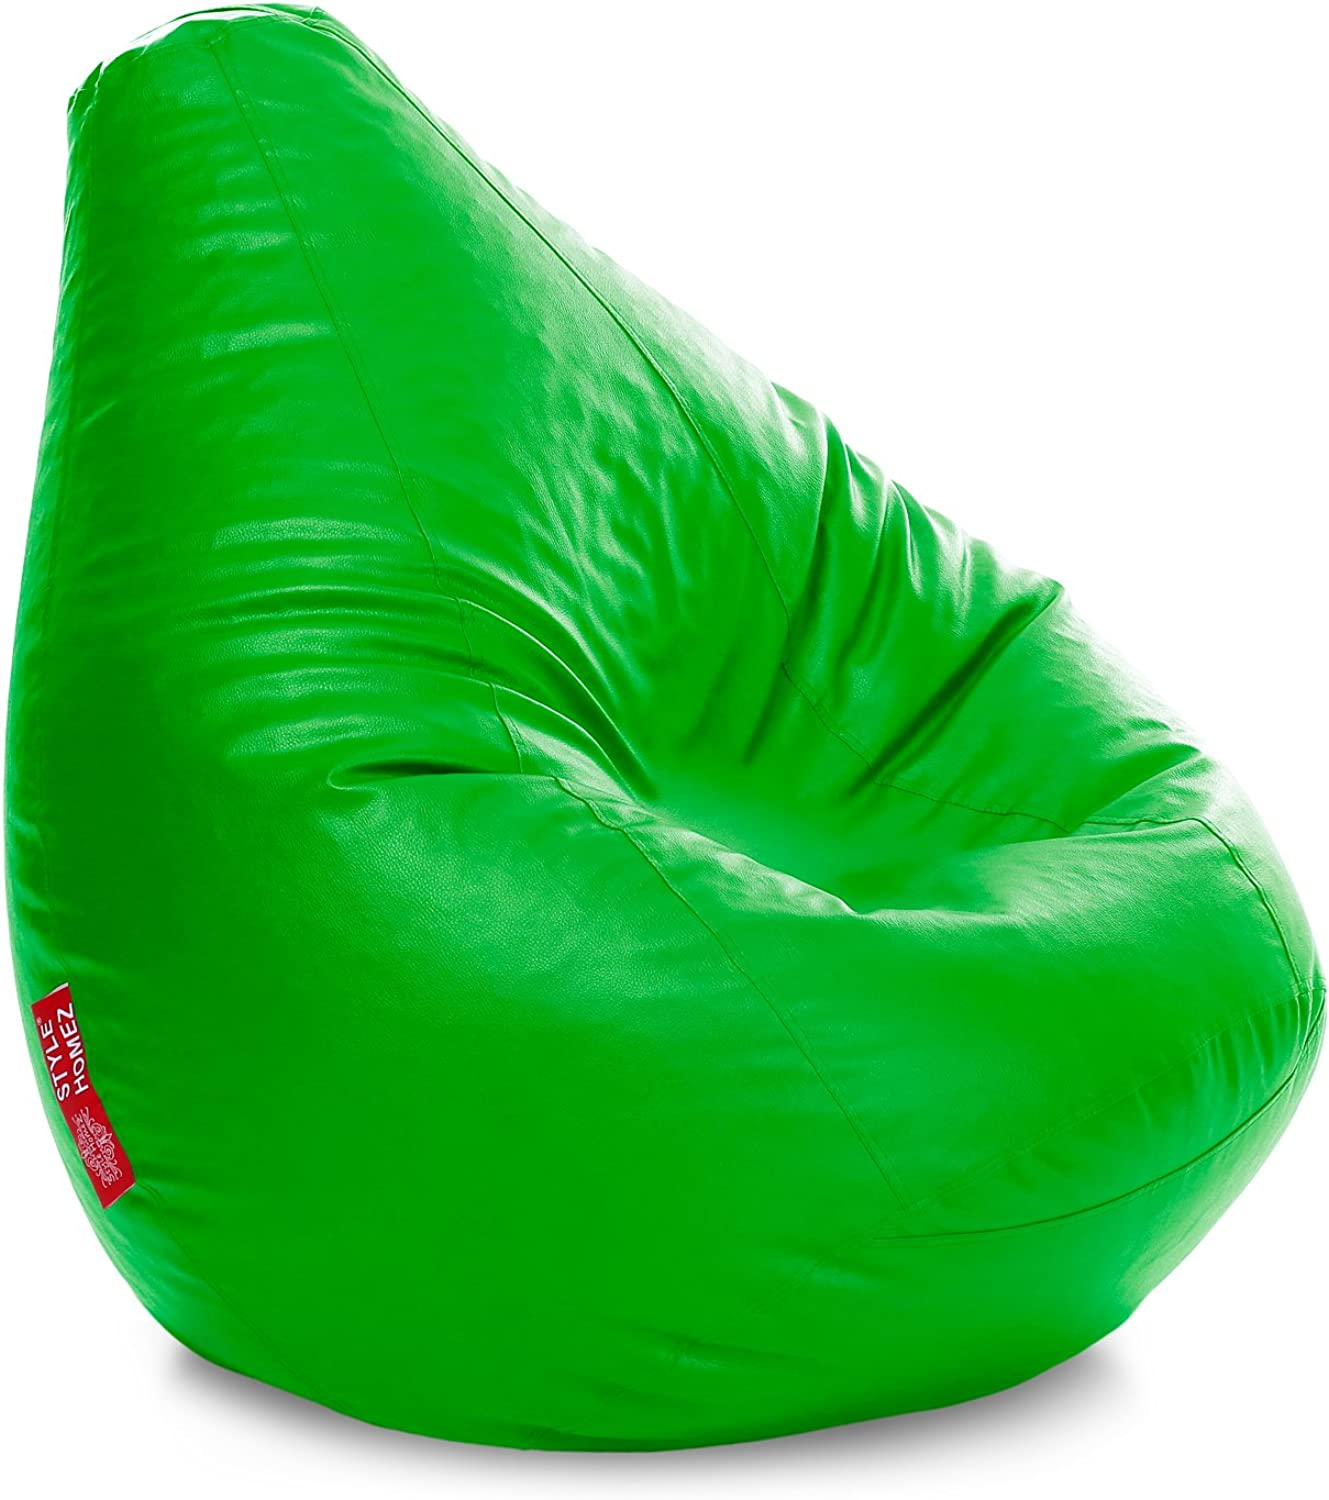 Style Homez Classic Bean Bag XXXL Size Parred Green Cover Only